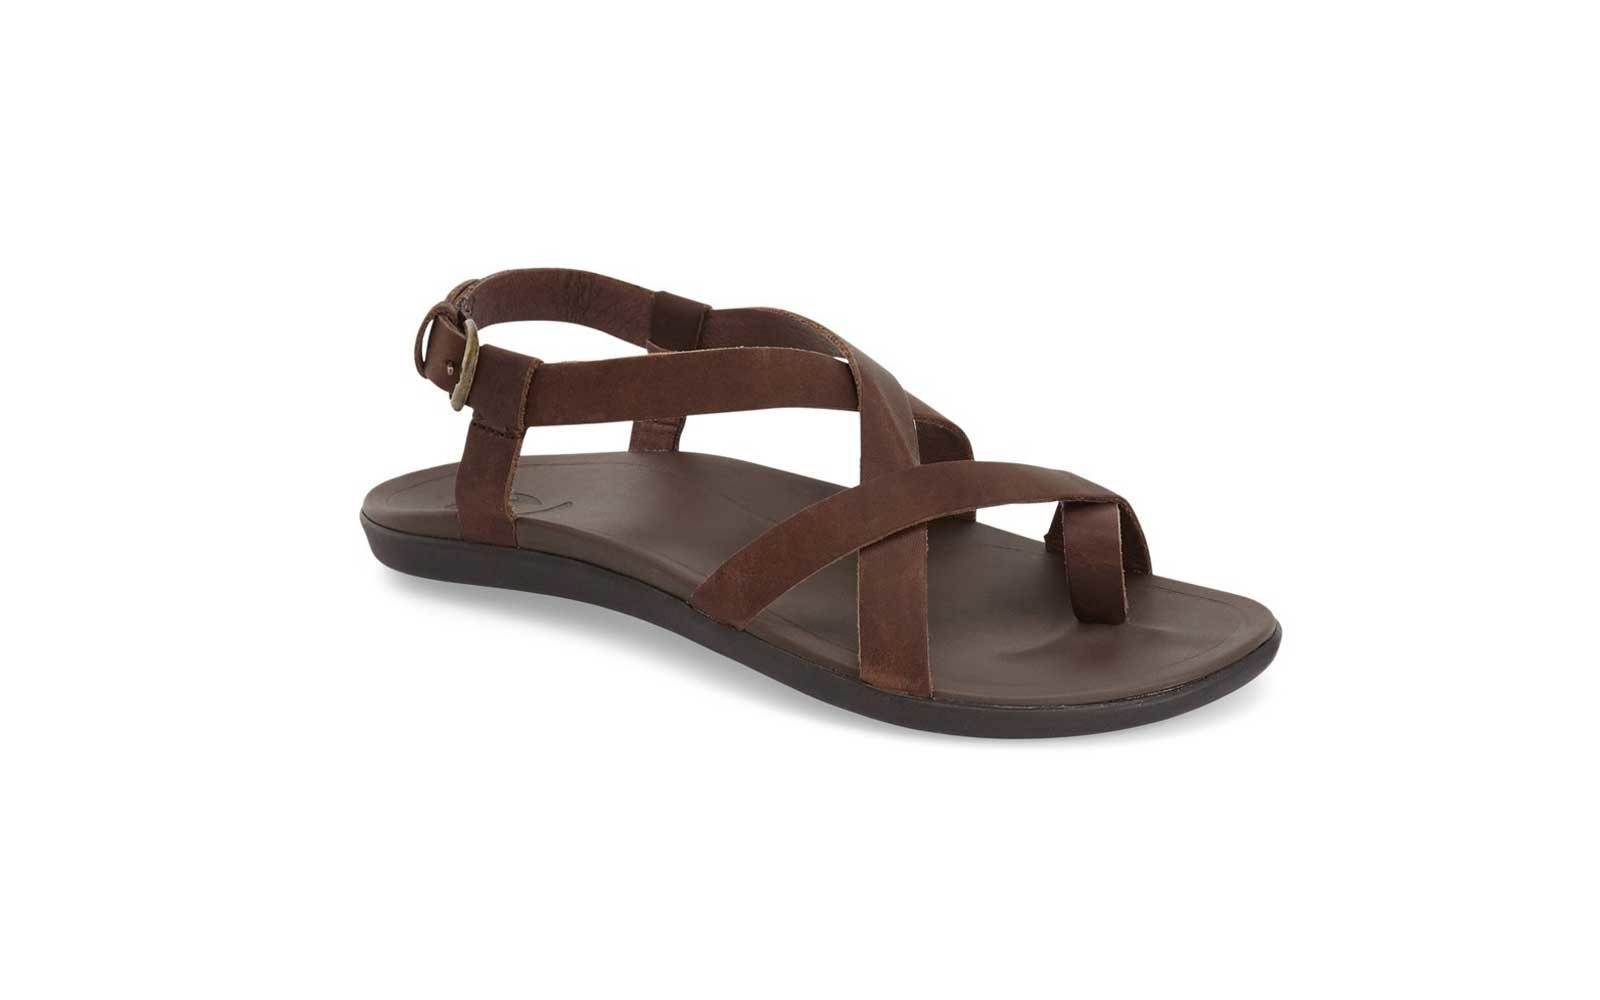 335fedb7417c69 Lightweight Leather  Olukai  Upena  Flat Sandal. womens olukai sandals